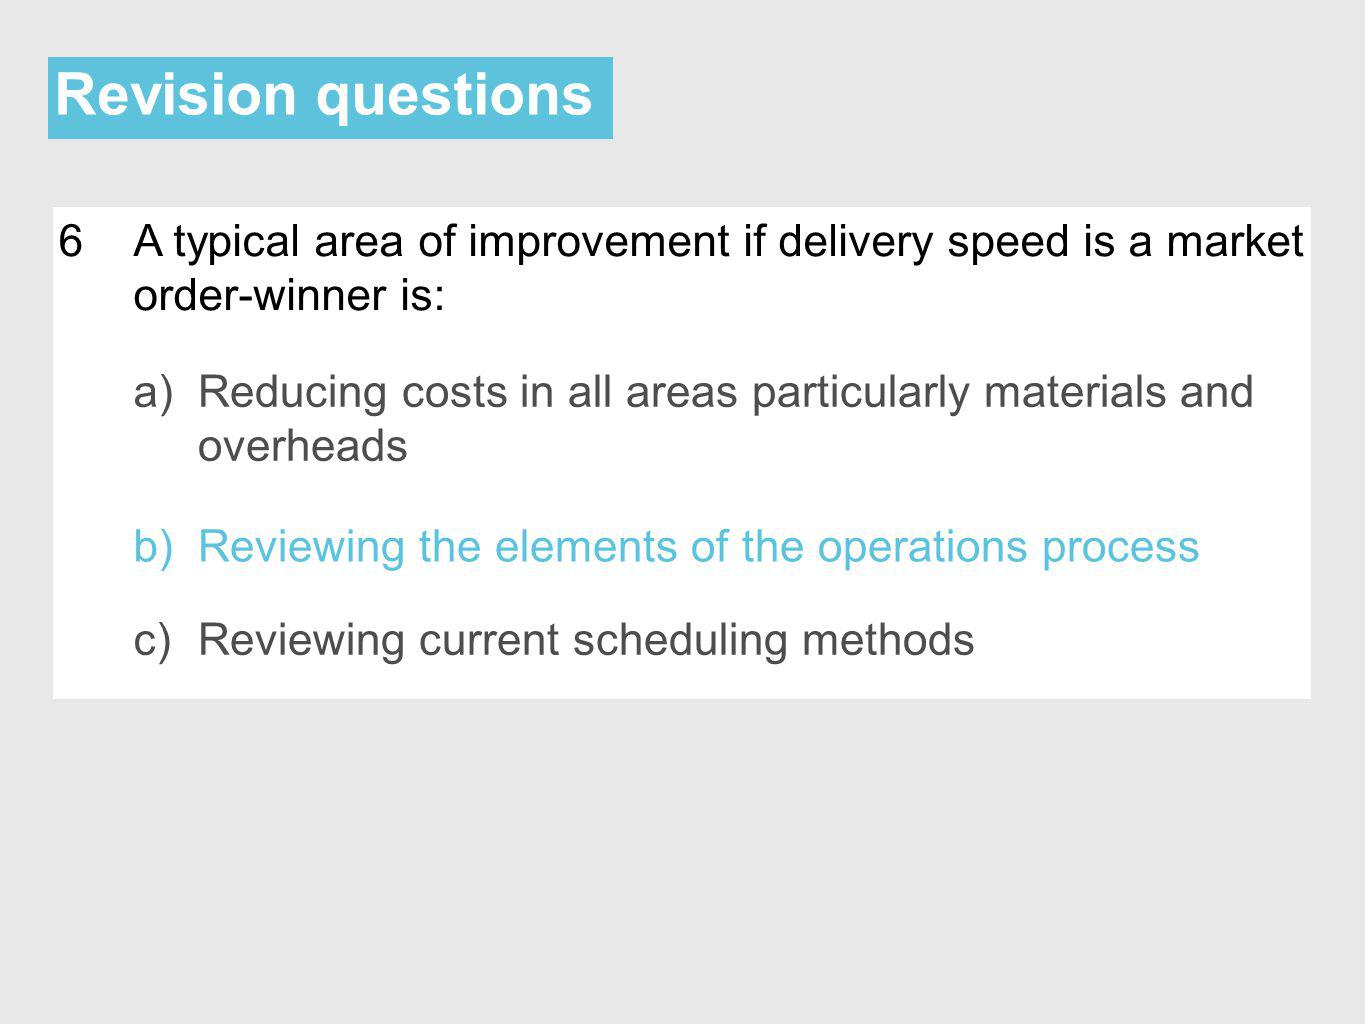 Revision questions 6A typical area of improvement if delivery speed is a market order-winner is: a)Reducing costs in all areas particularly materials and overheads b)Reviewing the elements of the operations process c)Reviewing current scheduling methods